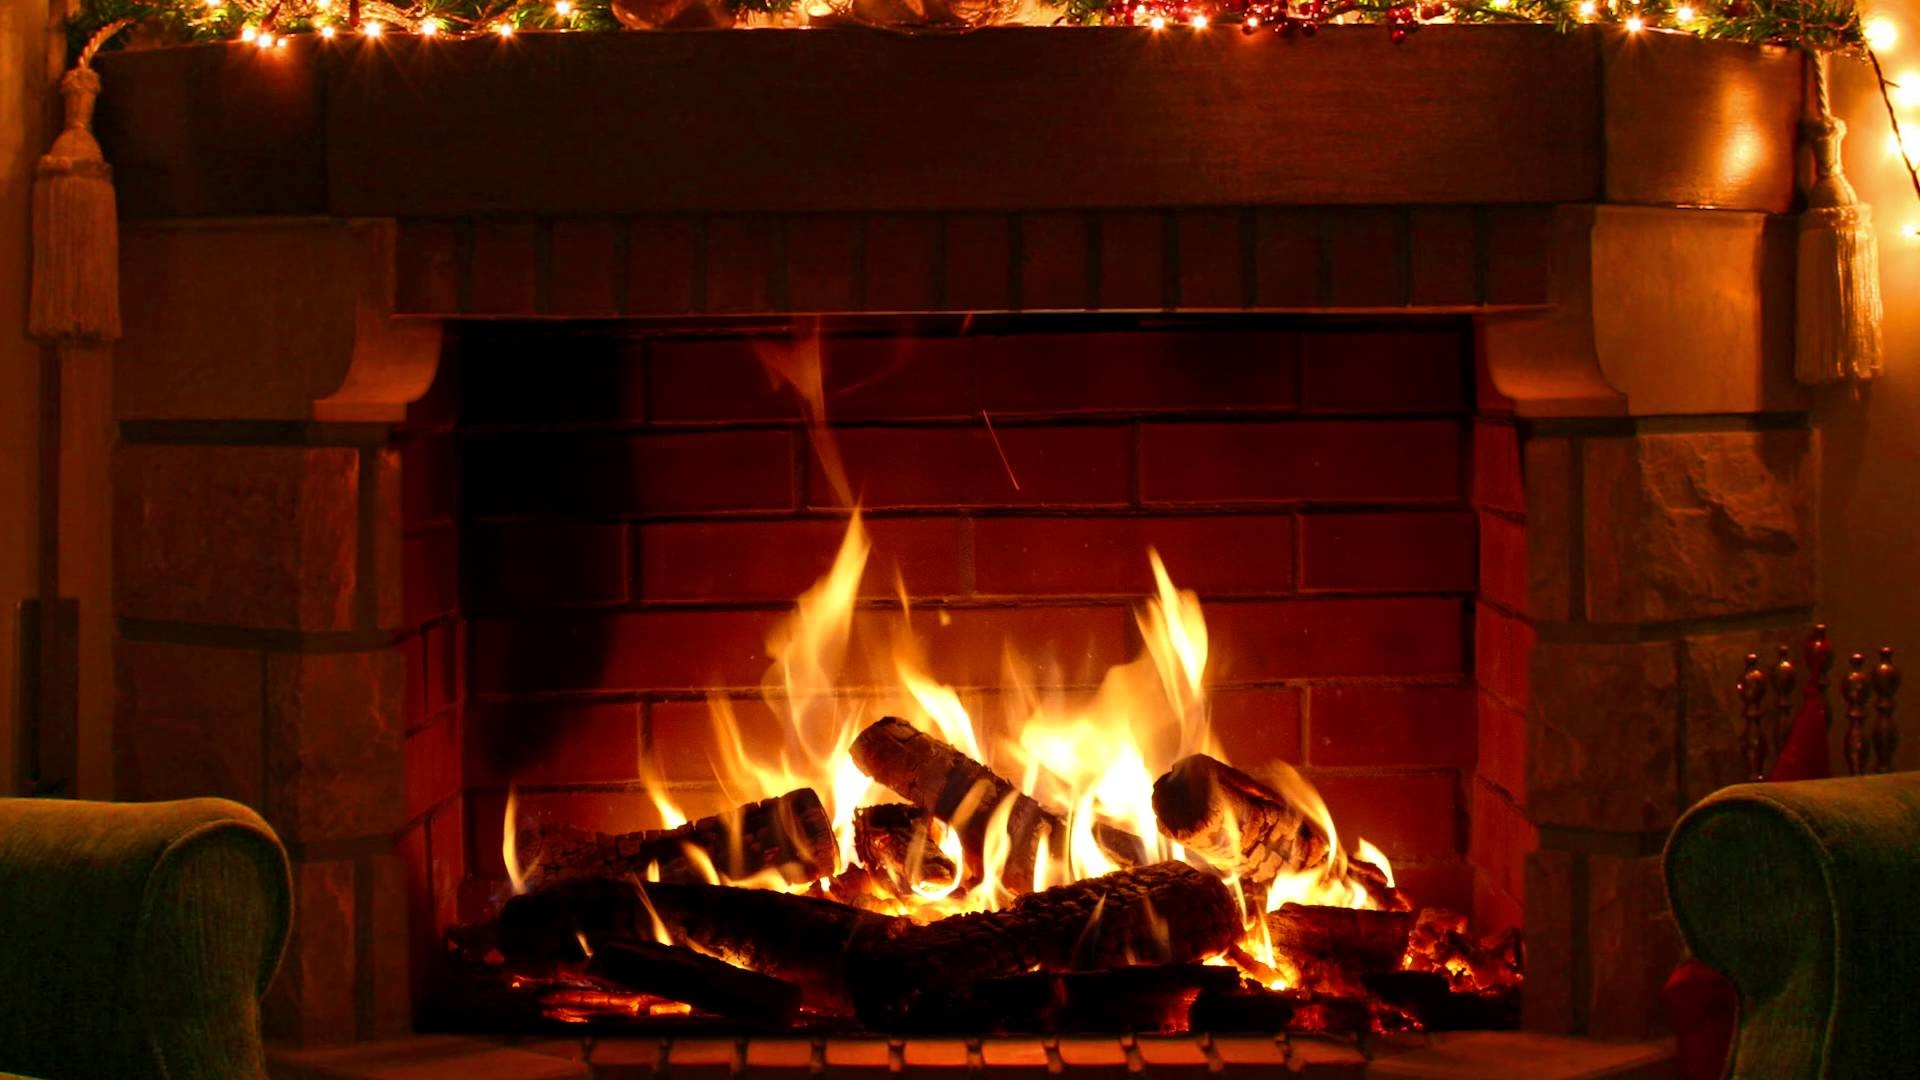 Fireplace Wallpaper (57+ Images